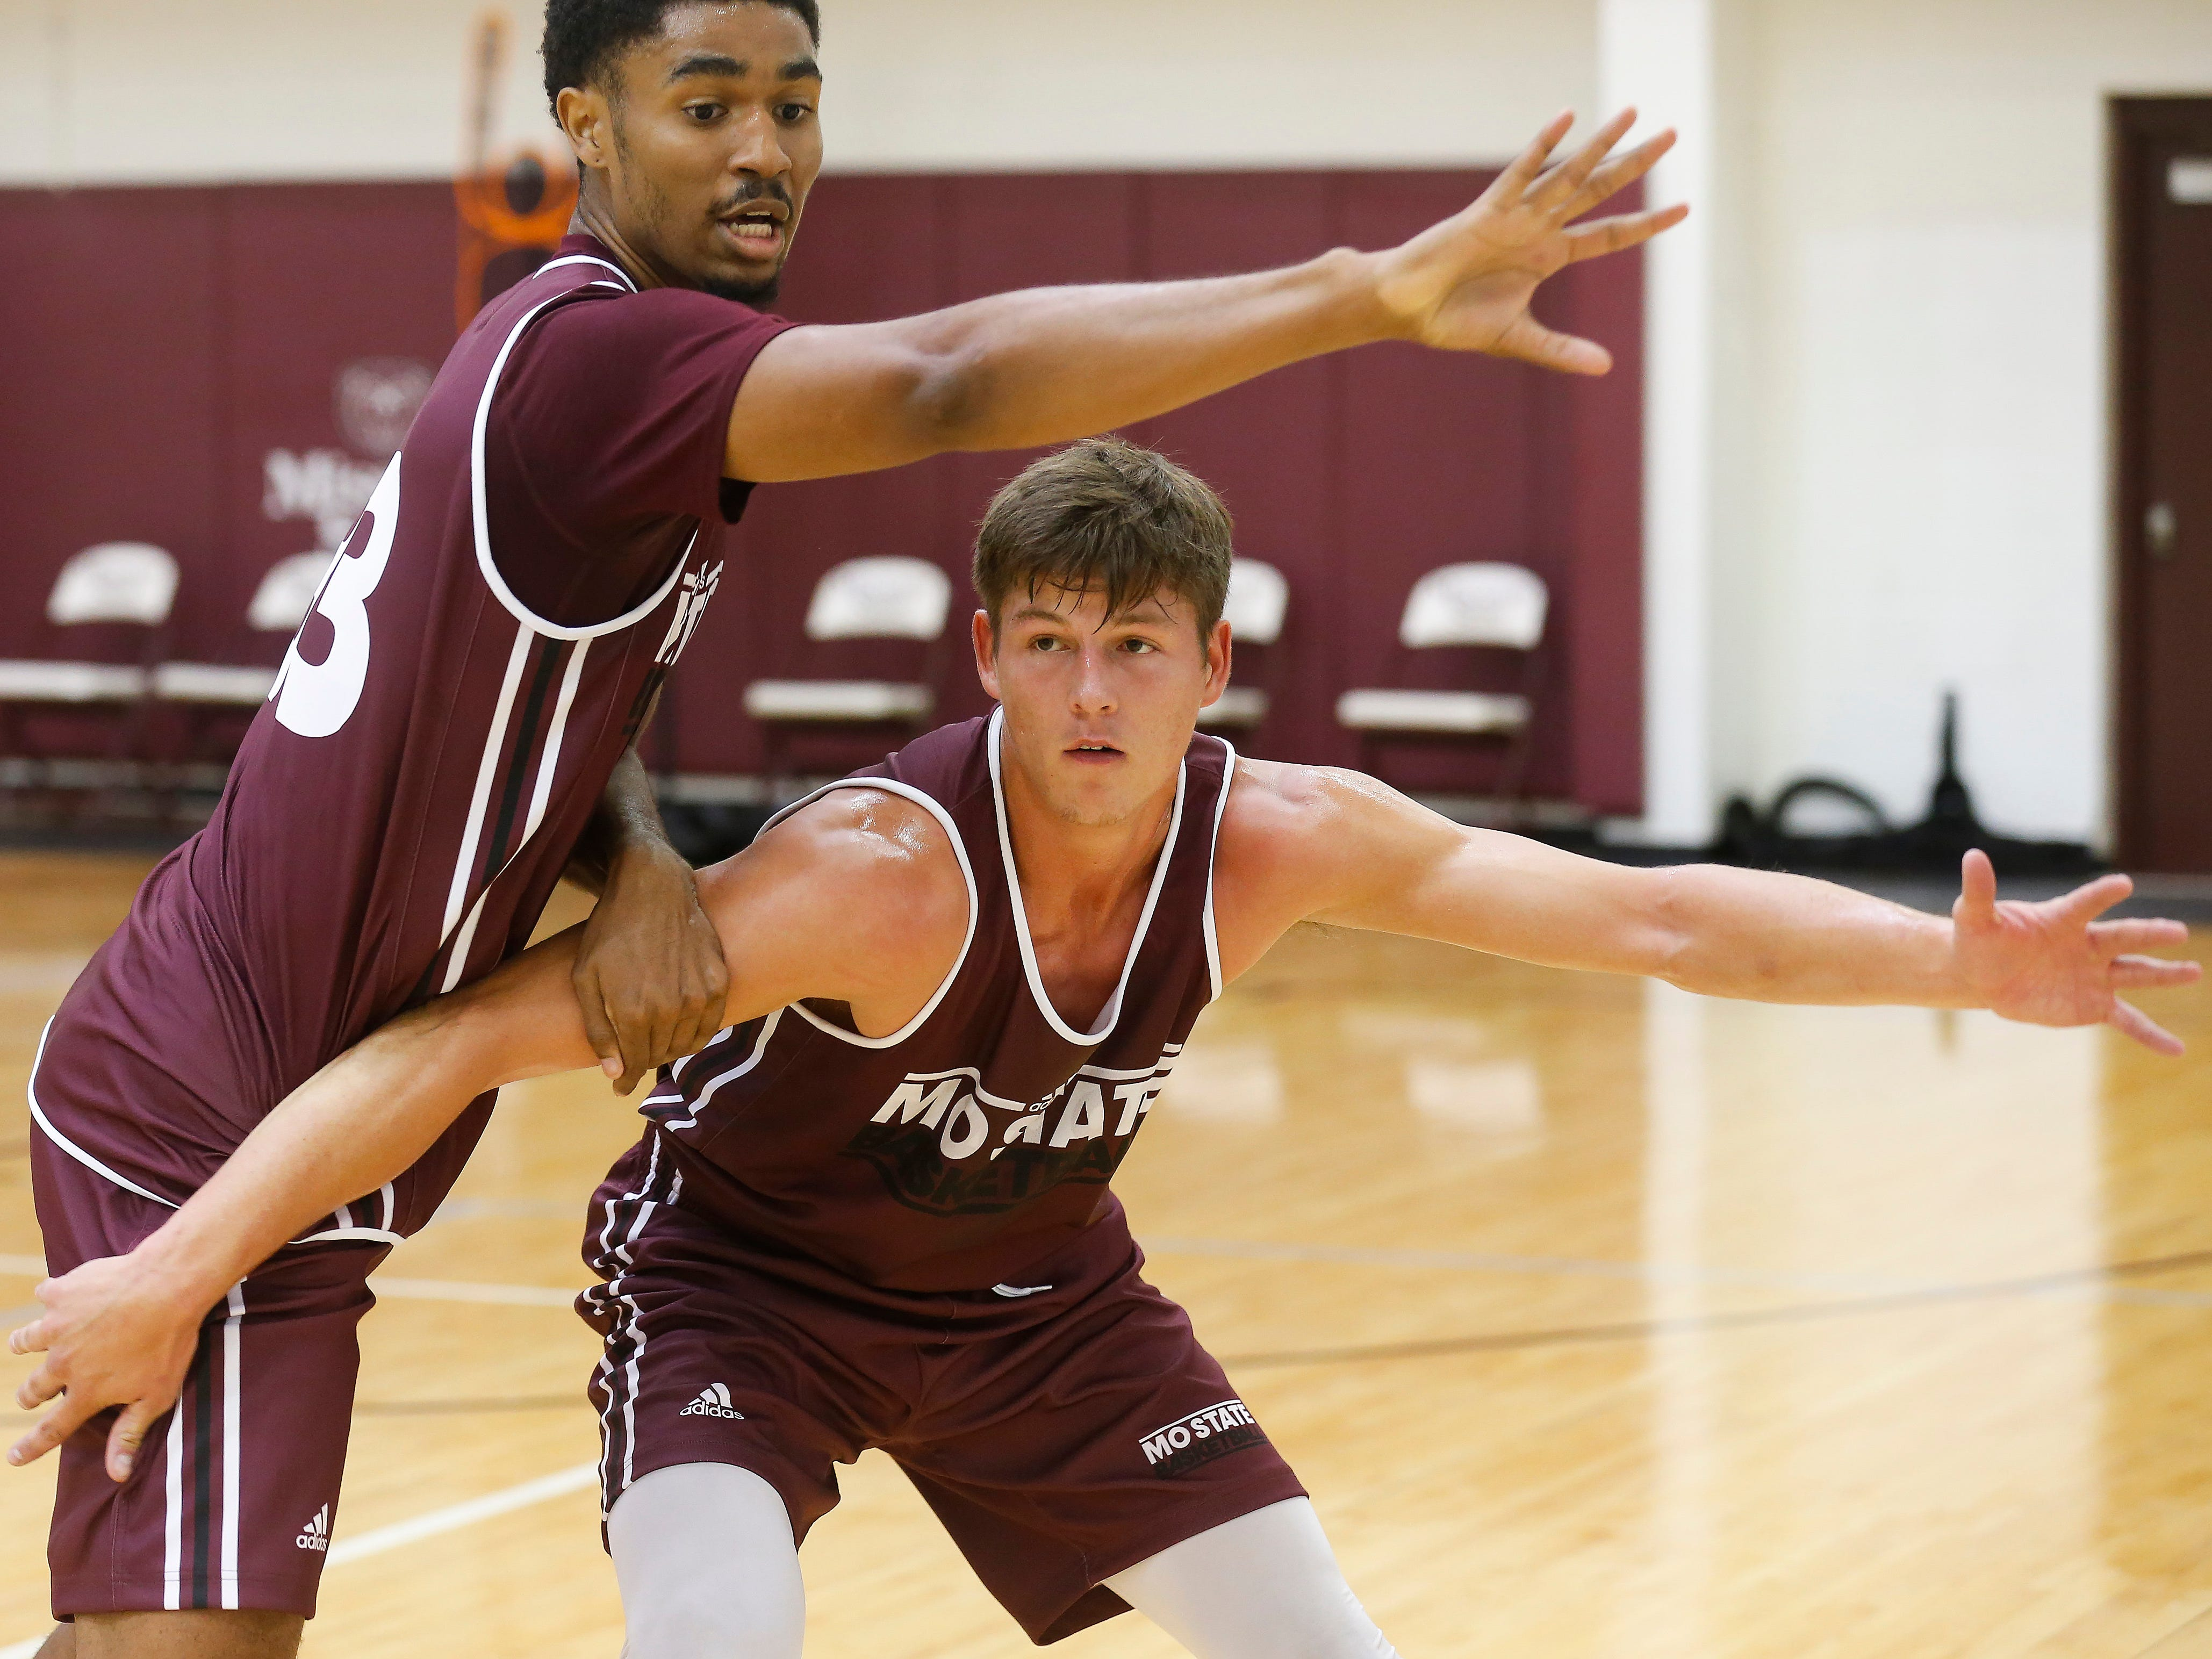 Ryan Kreklow, right, and Josh Hall run a drill during the Missouri State University men's basketball team's first practice of the season on Tuesday, Sept. 25, 2018.